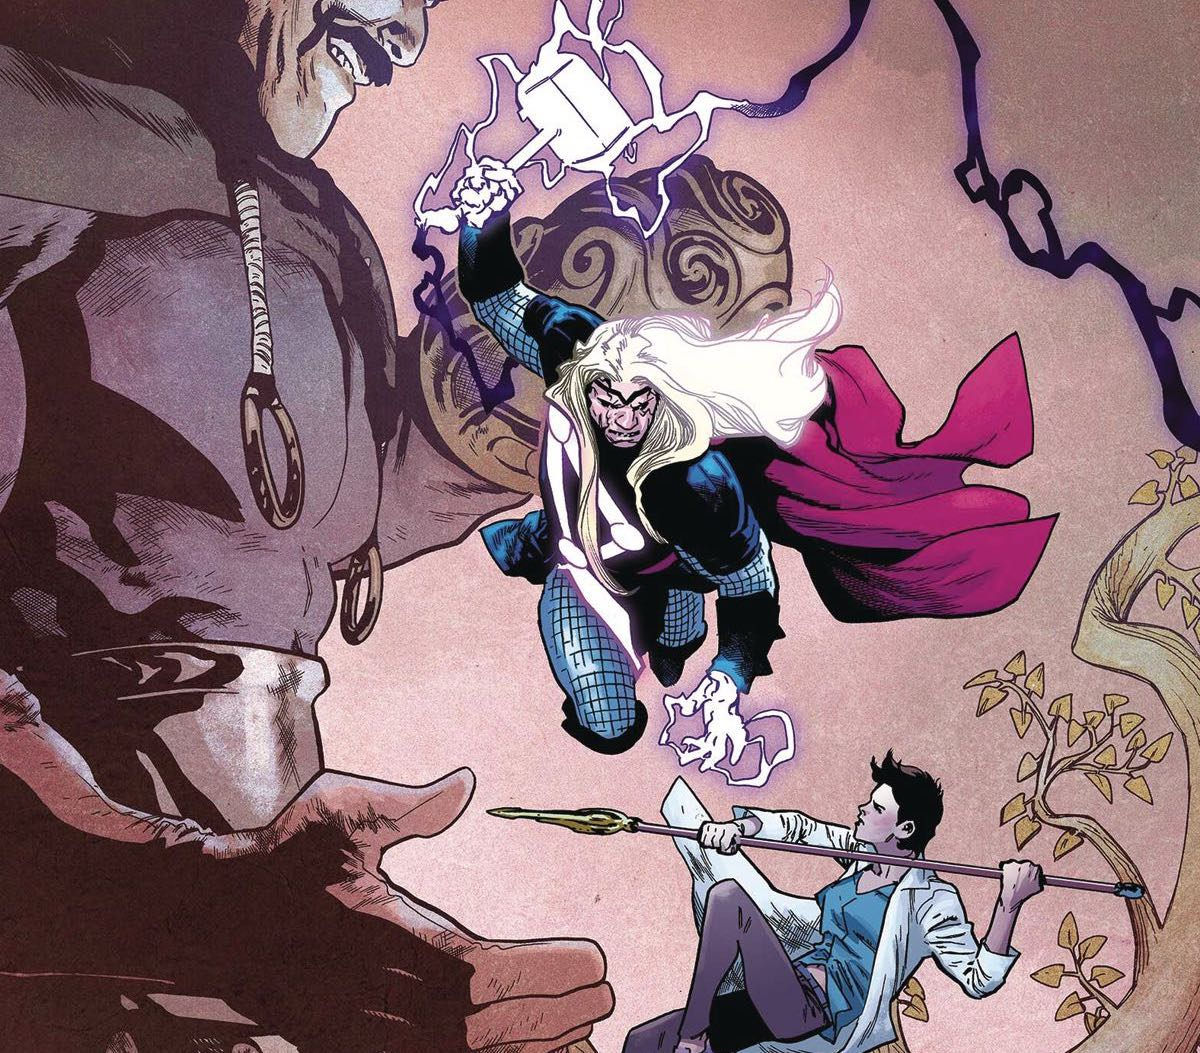 EXCLUSIVE Marvel Preview: Jane Foster: Valkyrie #9